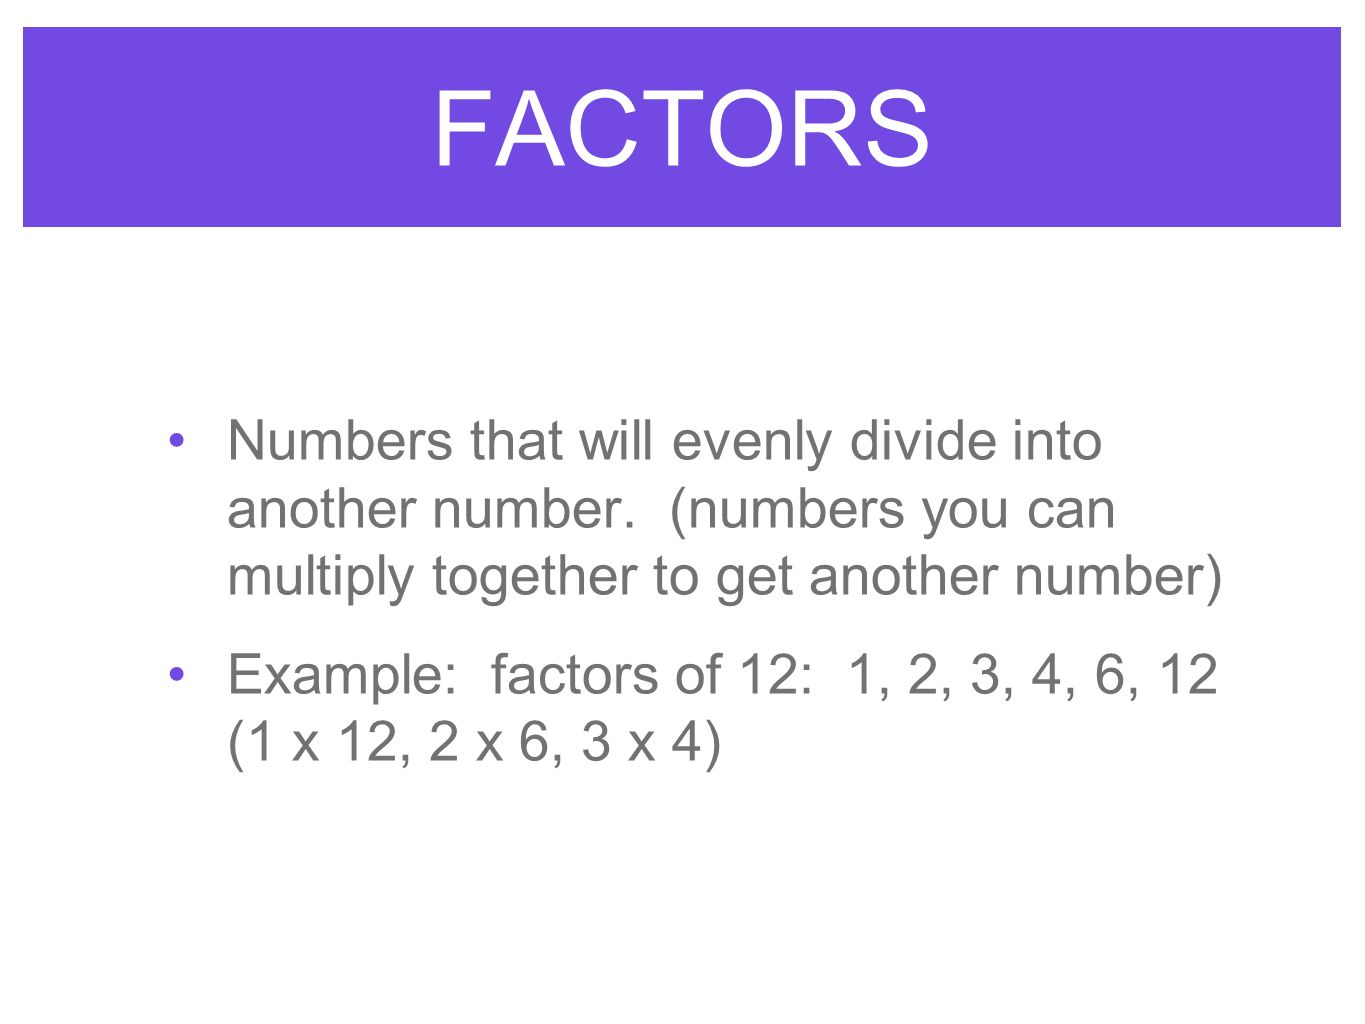 FACTORS Numbers that will evenly divide into another number. (numbers you can multiply together to get another number)